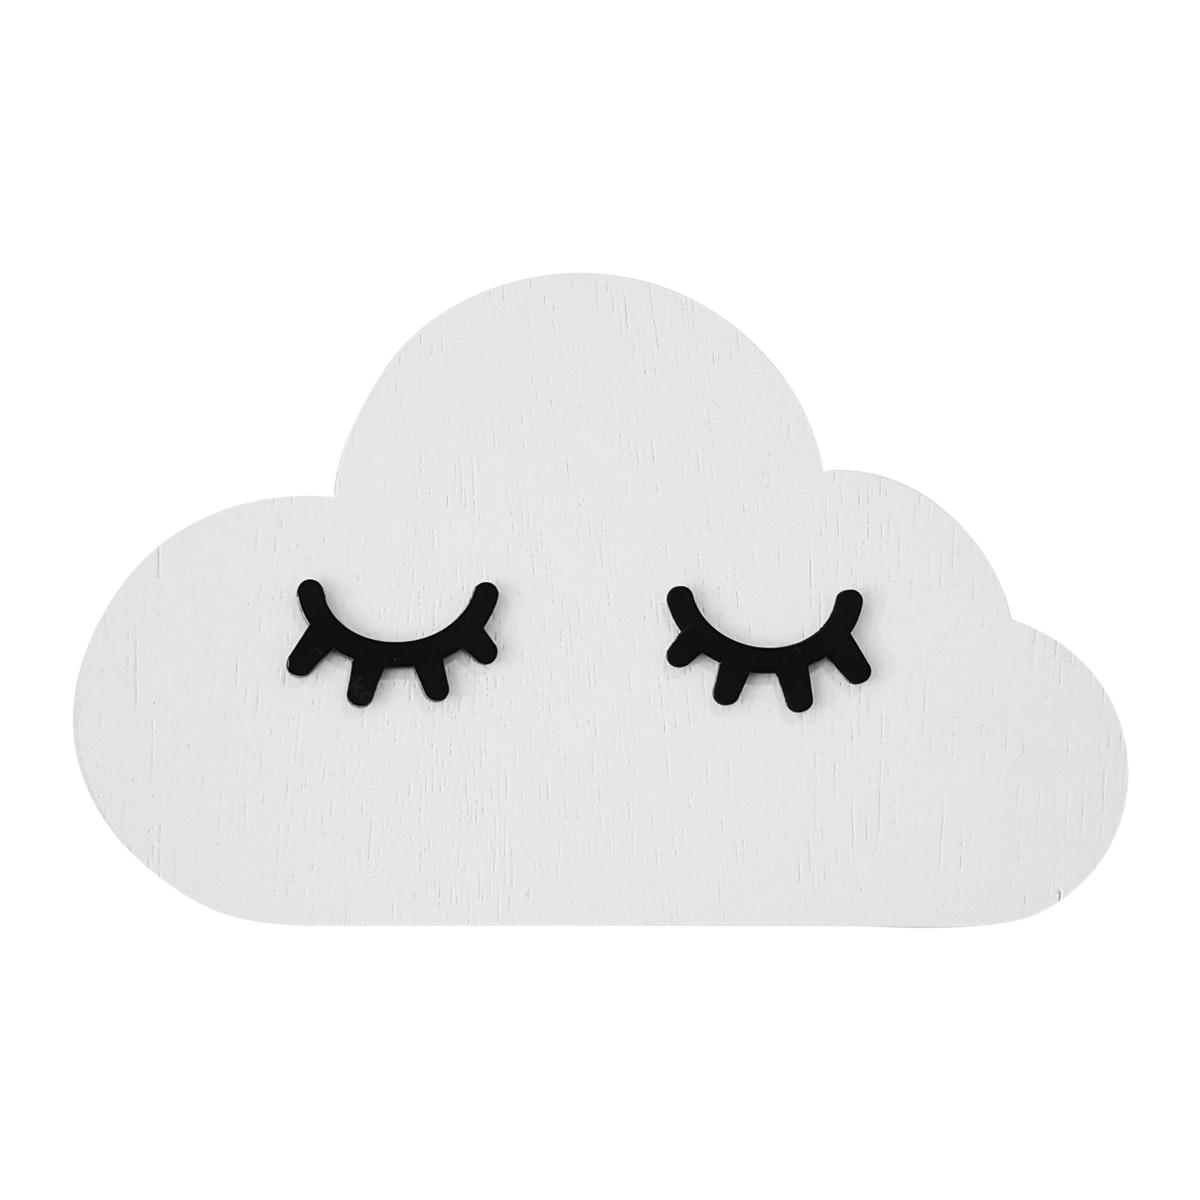 Kite Design Sleeping Cloud